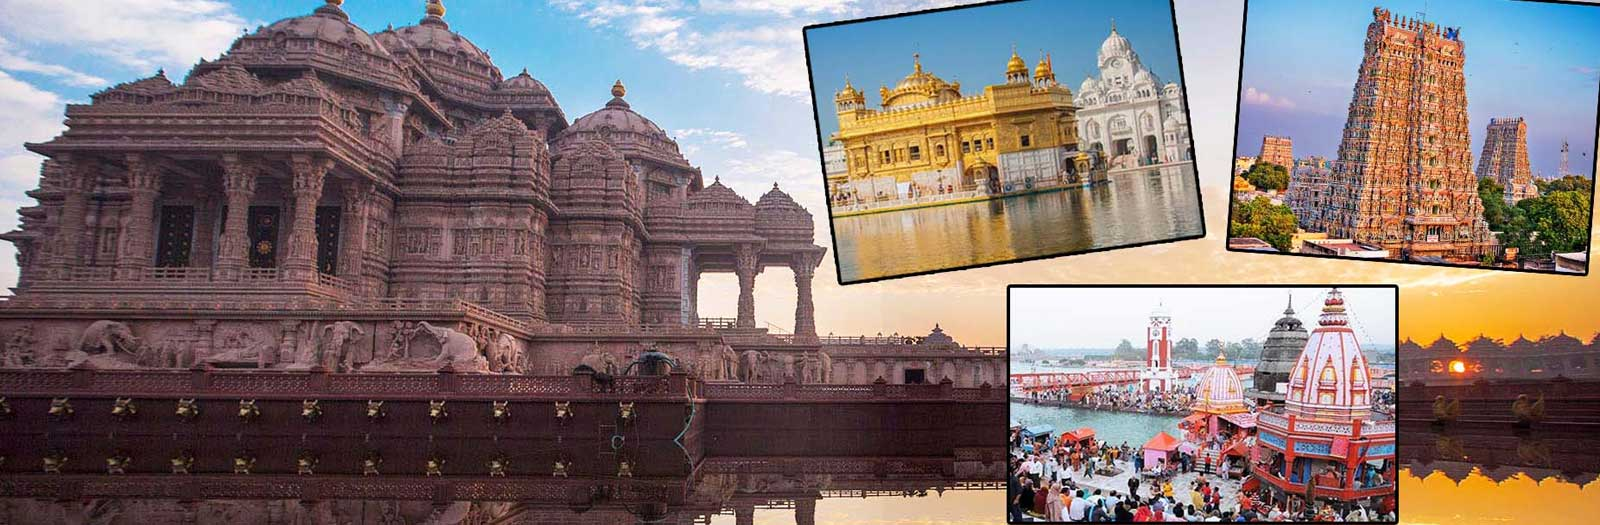 Rajasthan Pilgrimage Tour Packages